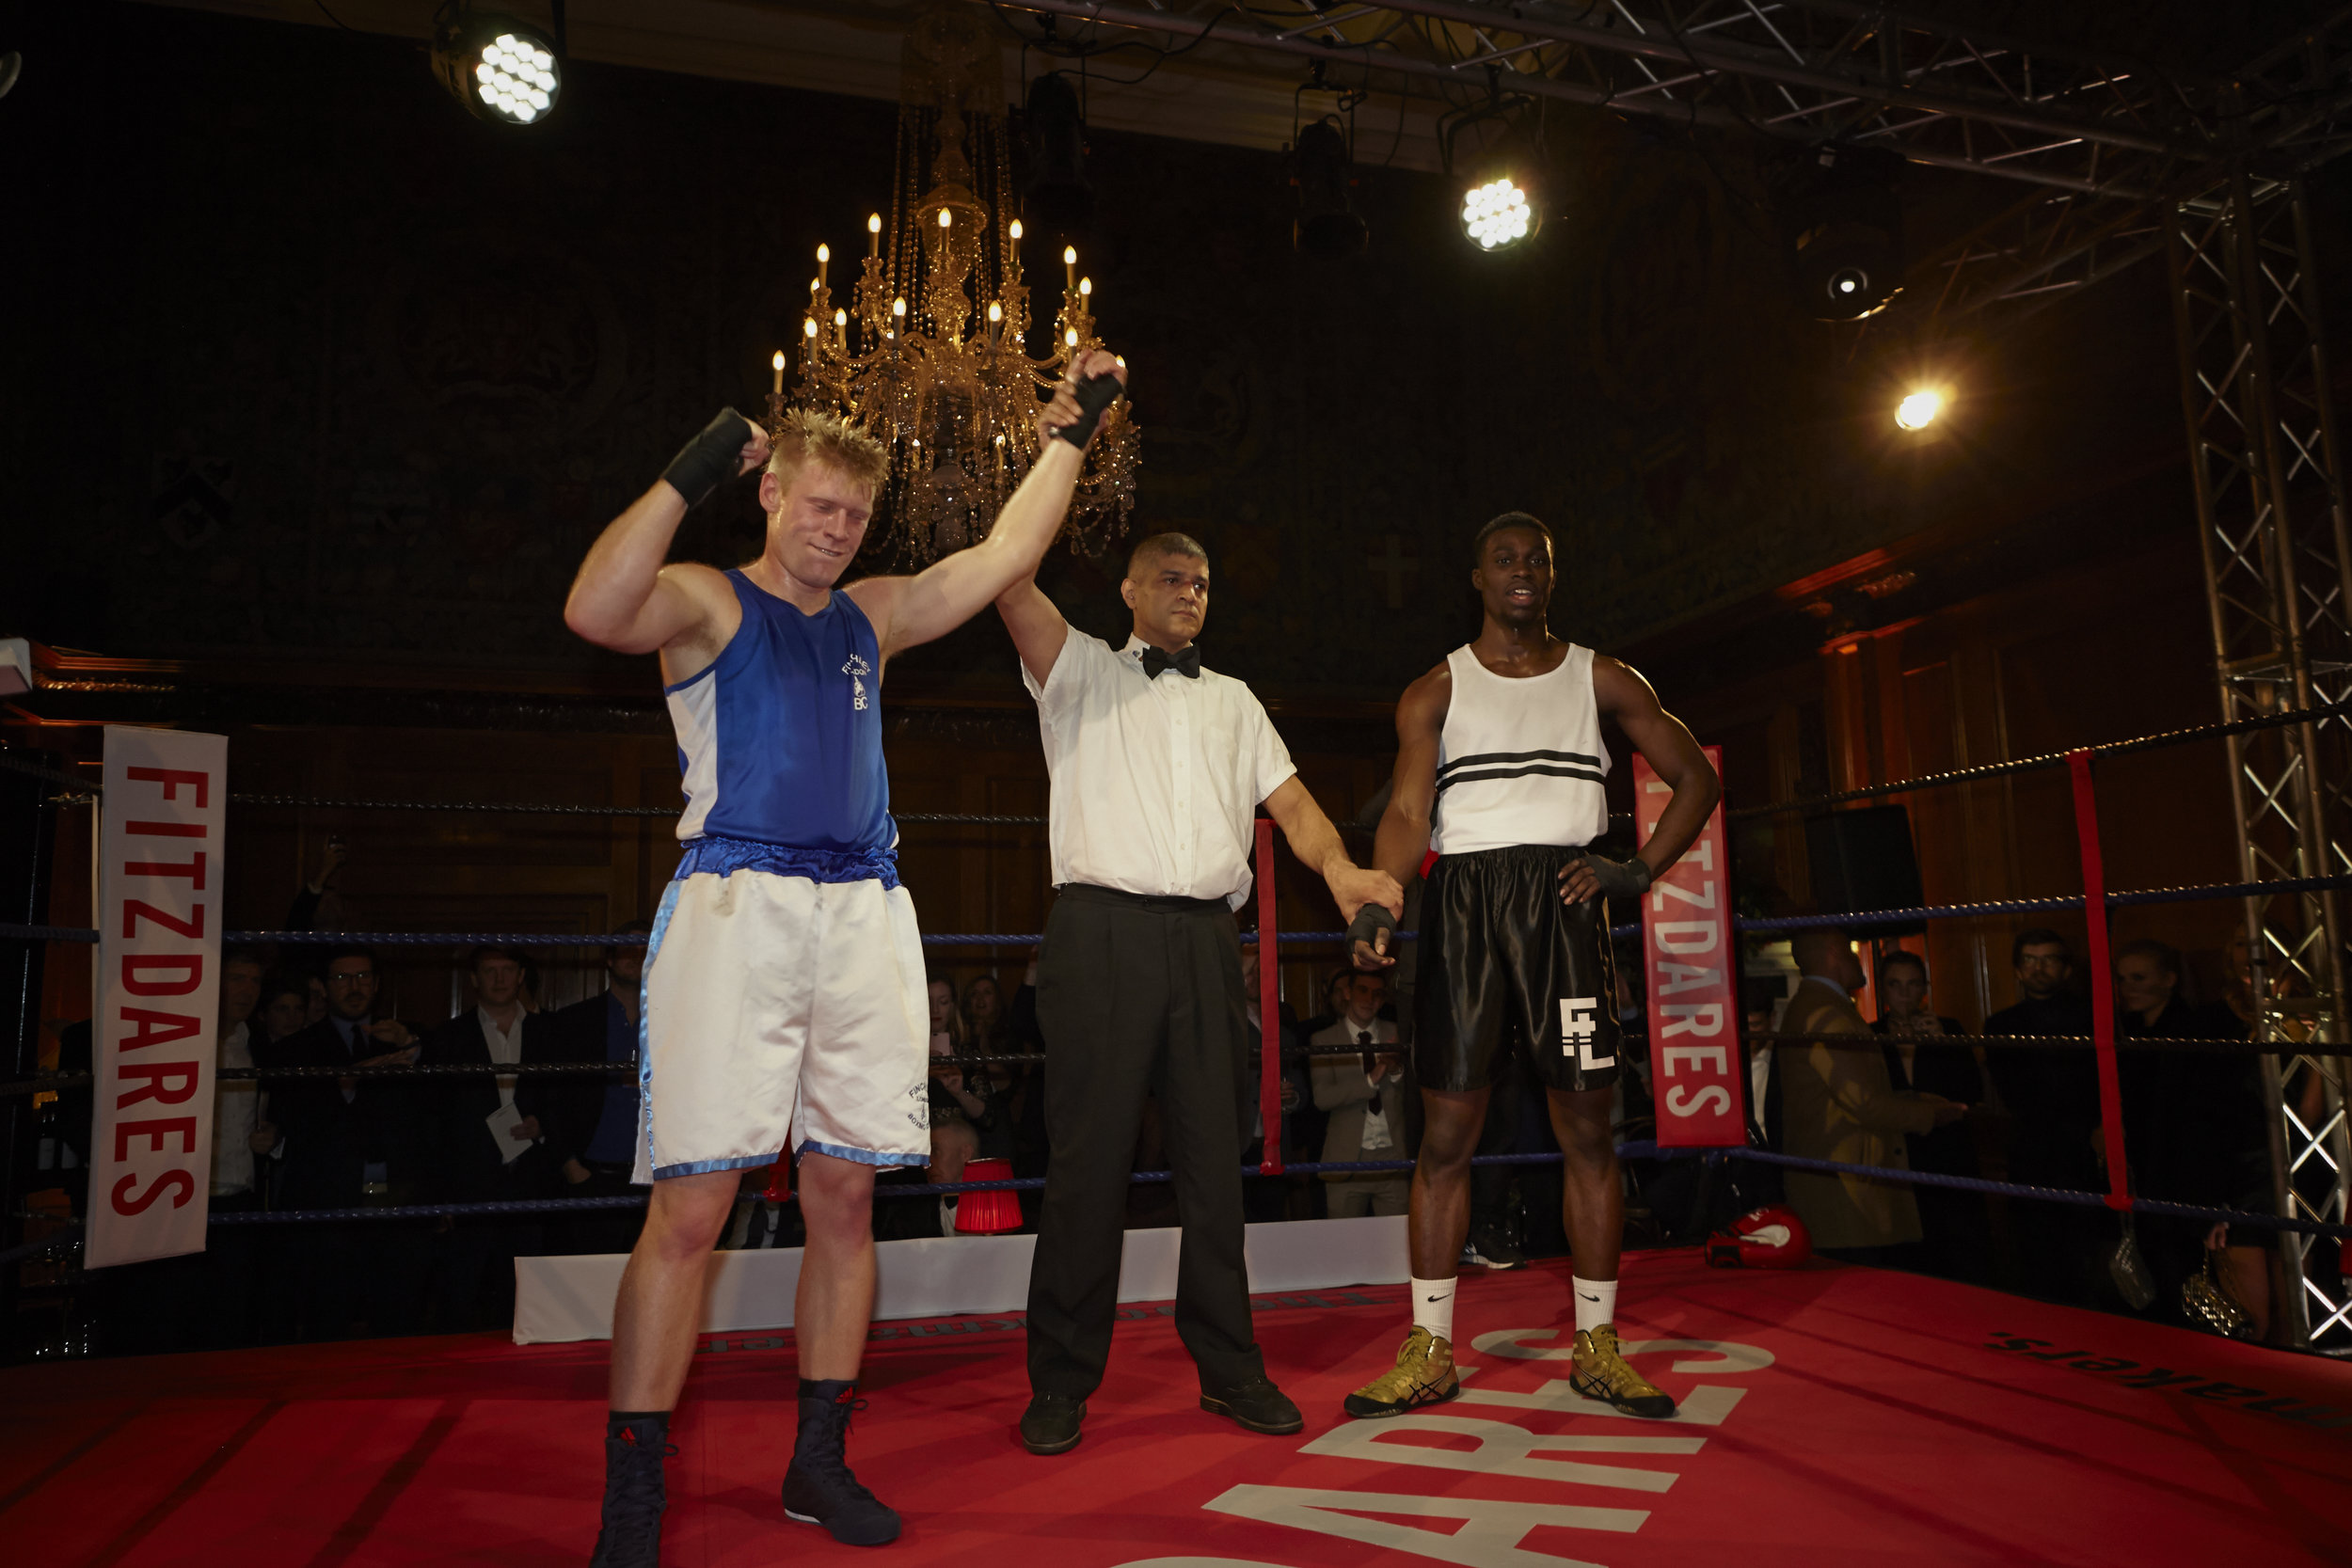 Johnstone won the first bout by split decision